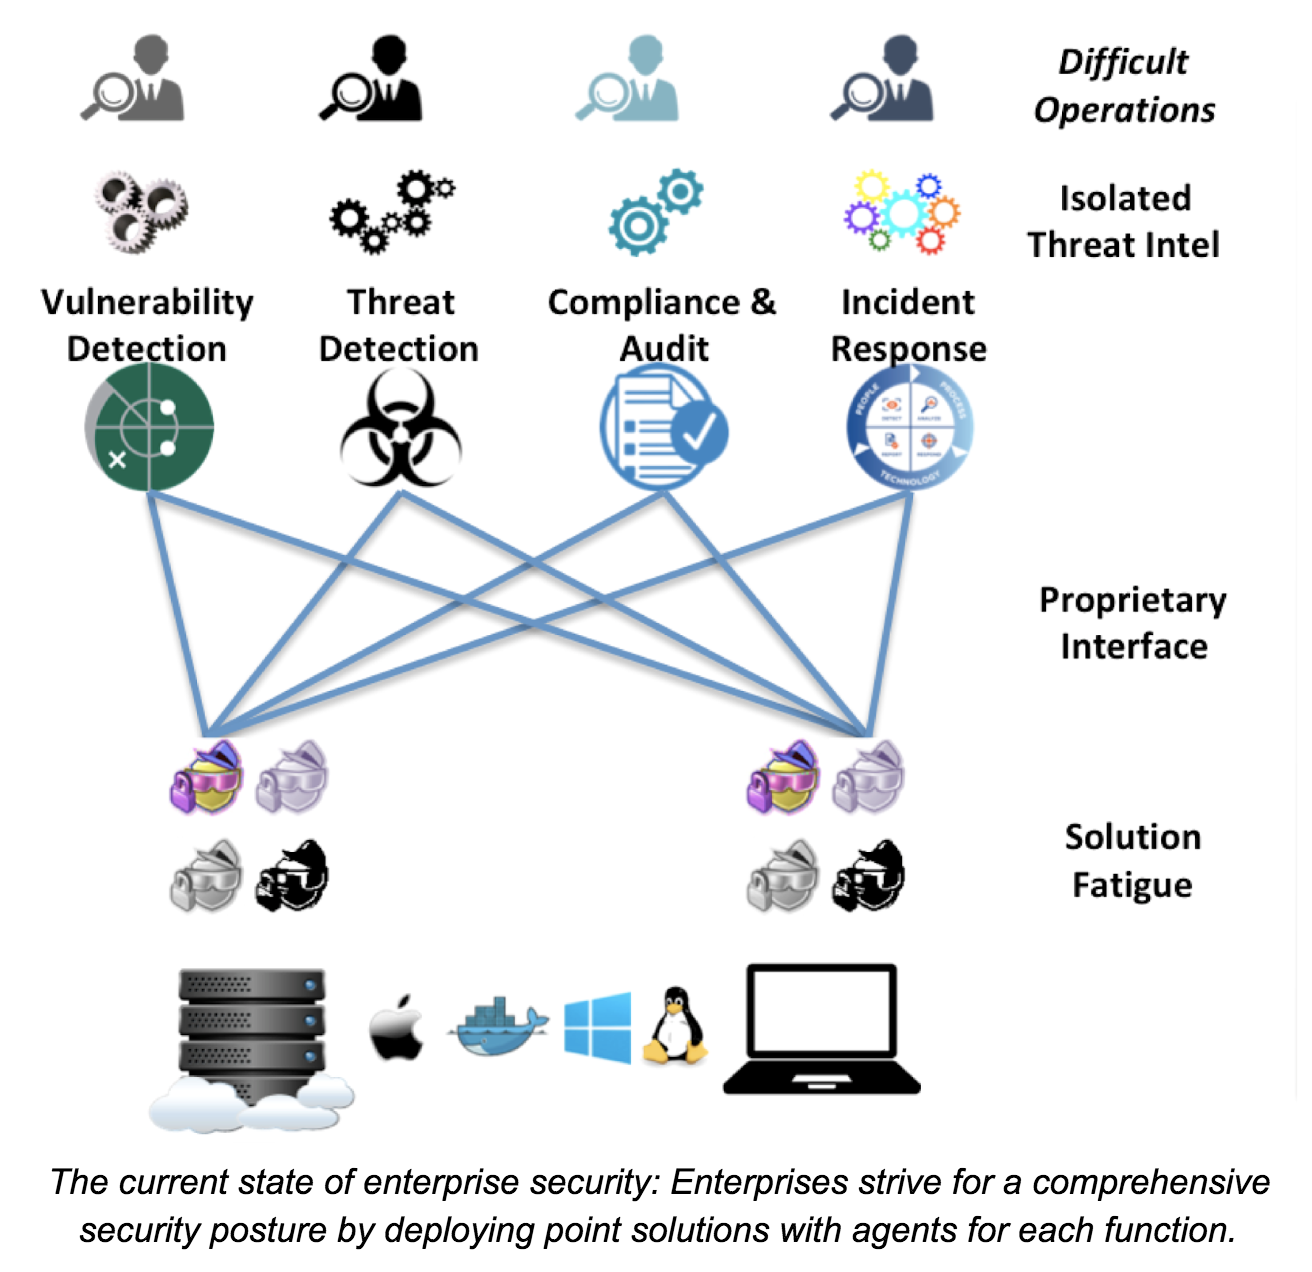 Current State of Enterprise Security Architecture